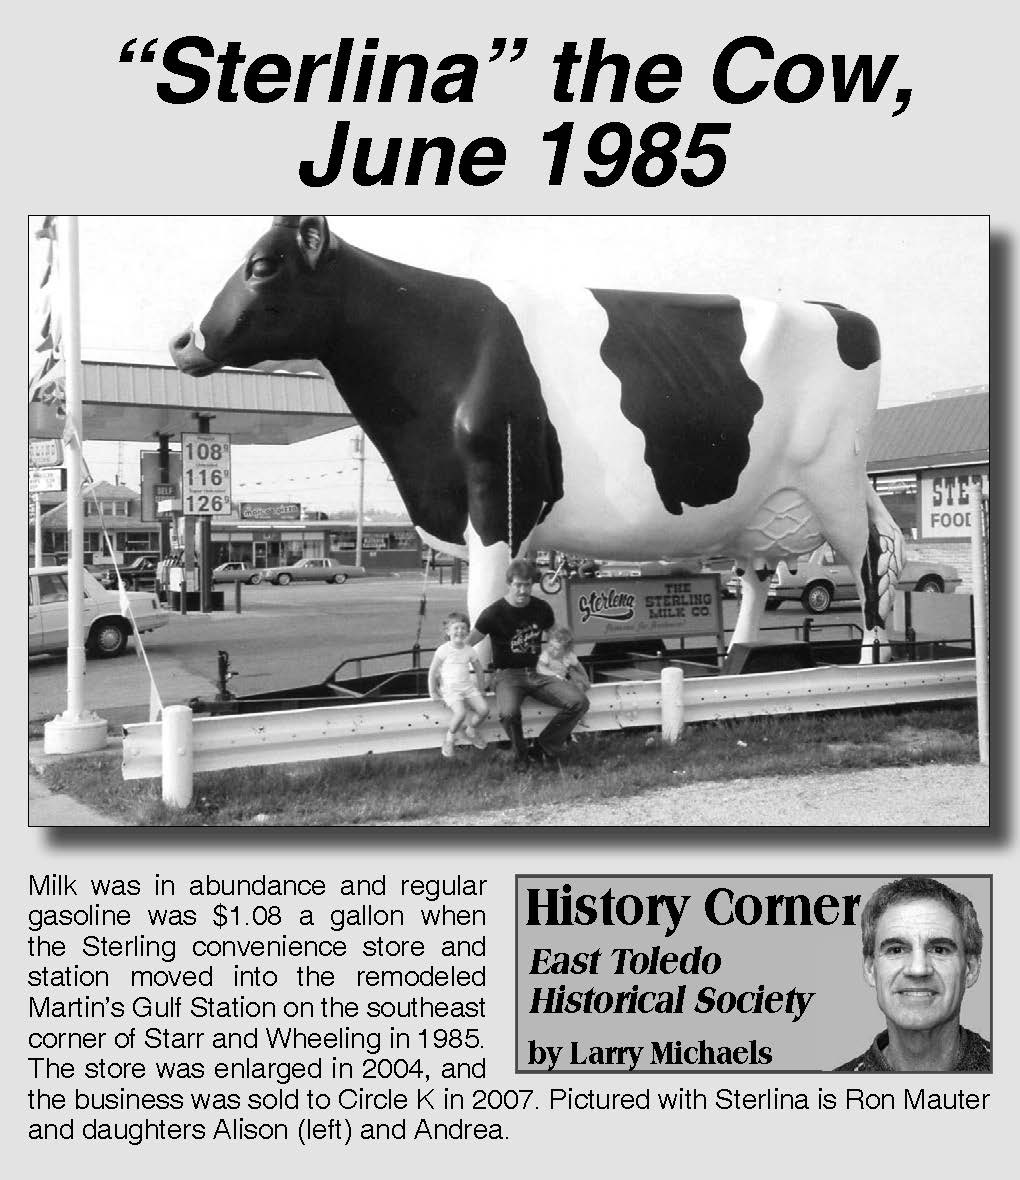 Sterlina the Cow, History Corner